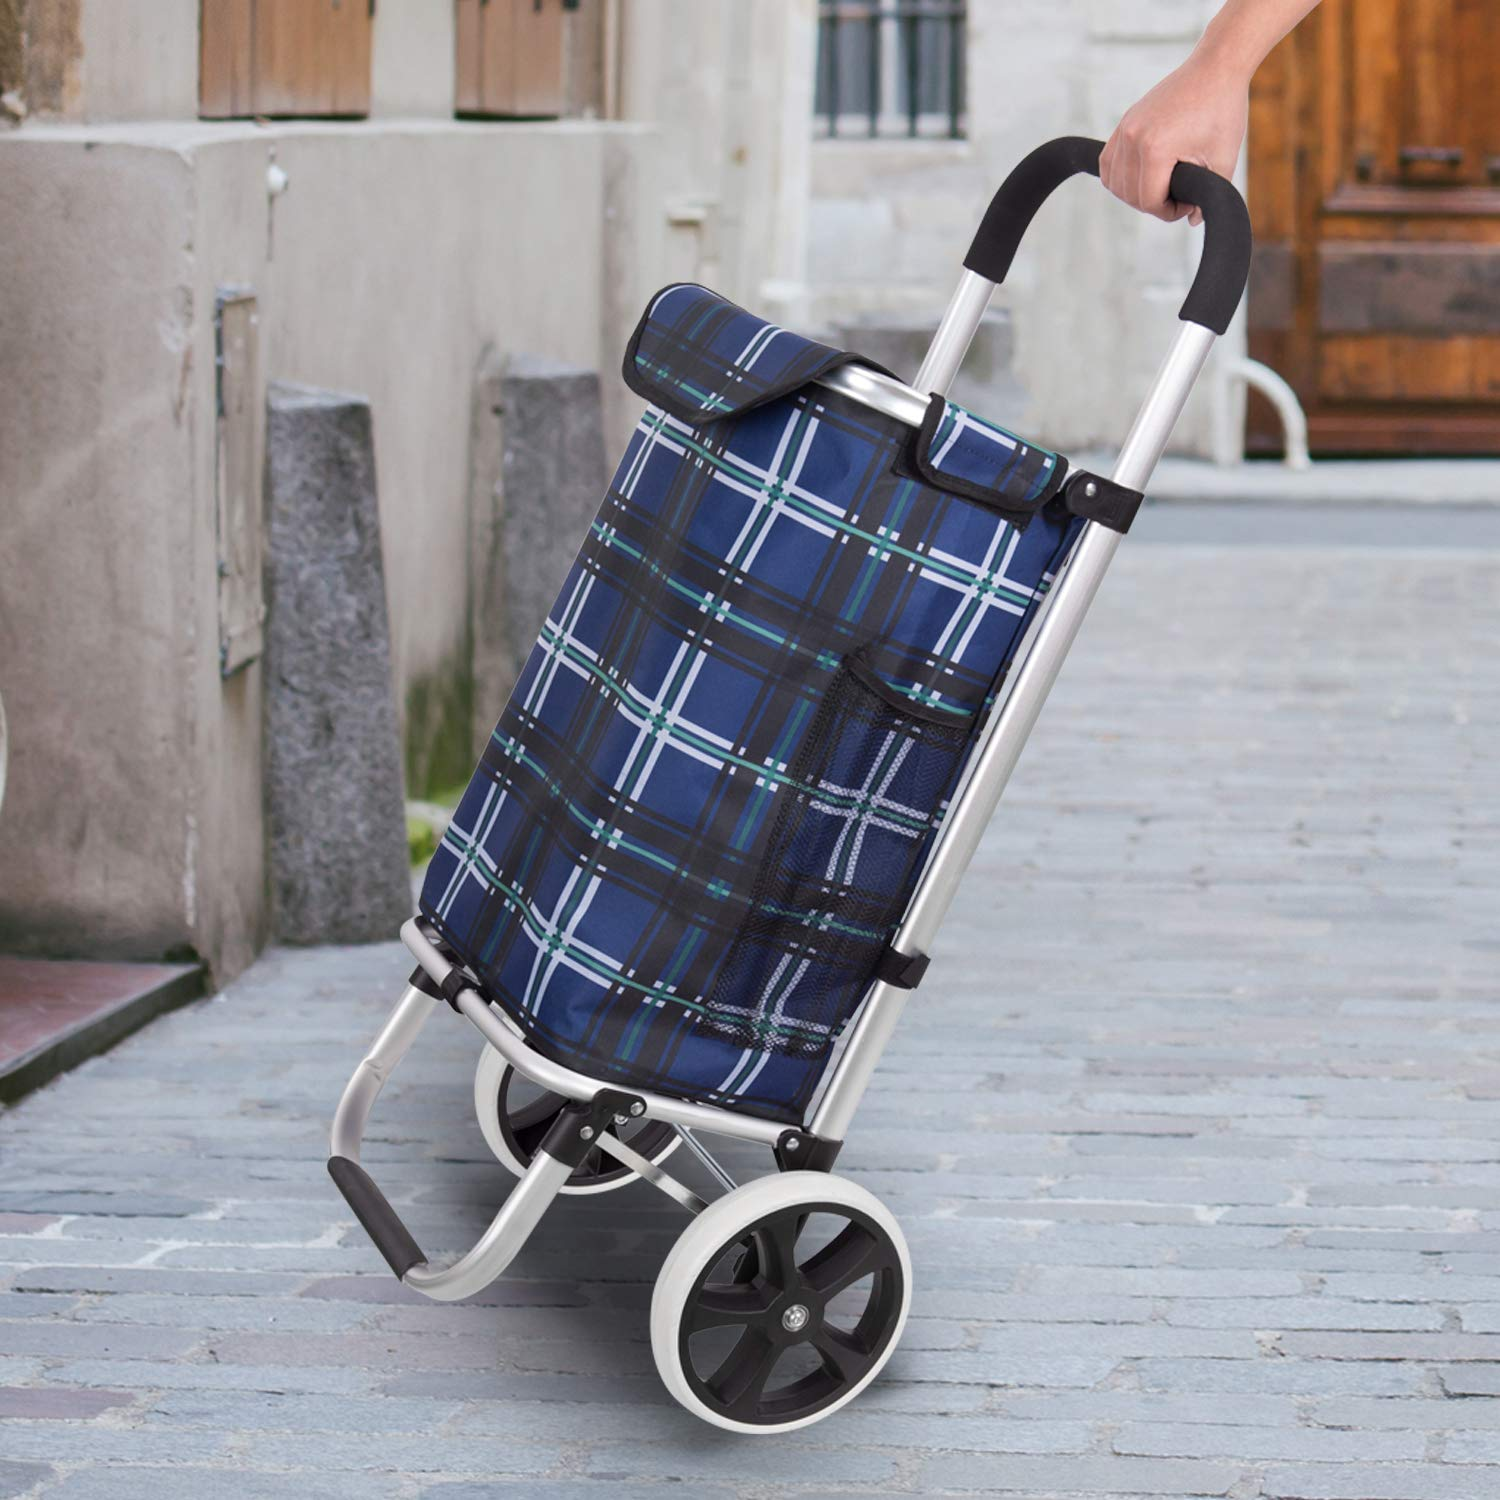 Waytrim Outdoor Aluminum Folding Shopping Trolley Dolly With Wheels And Bag Lightweight Grocery Laundry Utility Cart Portable For Shopping Travelling Heavy Duty Aluminum Frame Red Plaid Picnic Shopping Baskets Carts